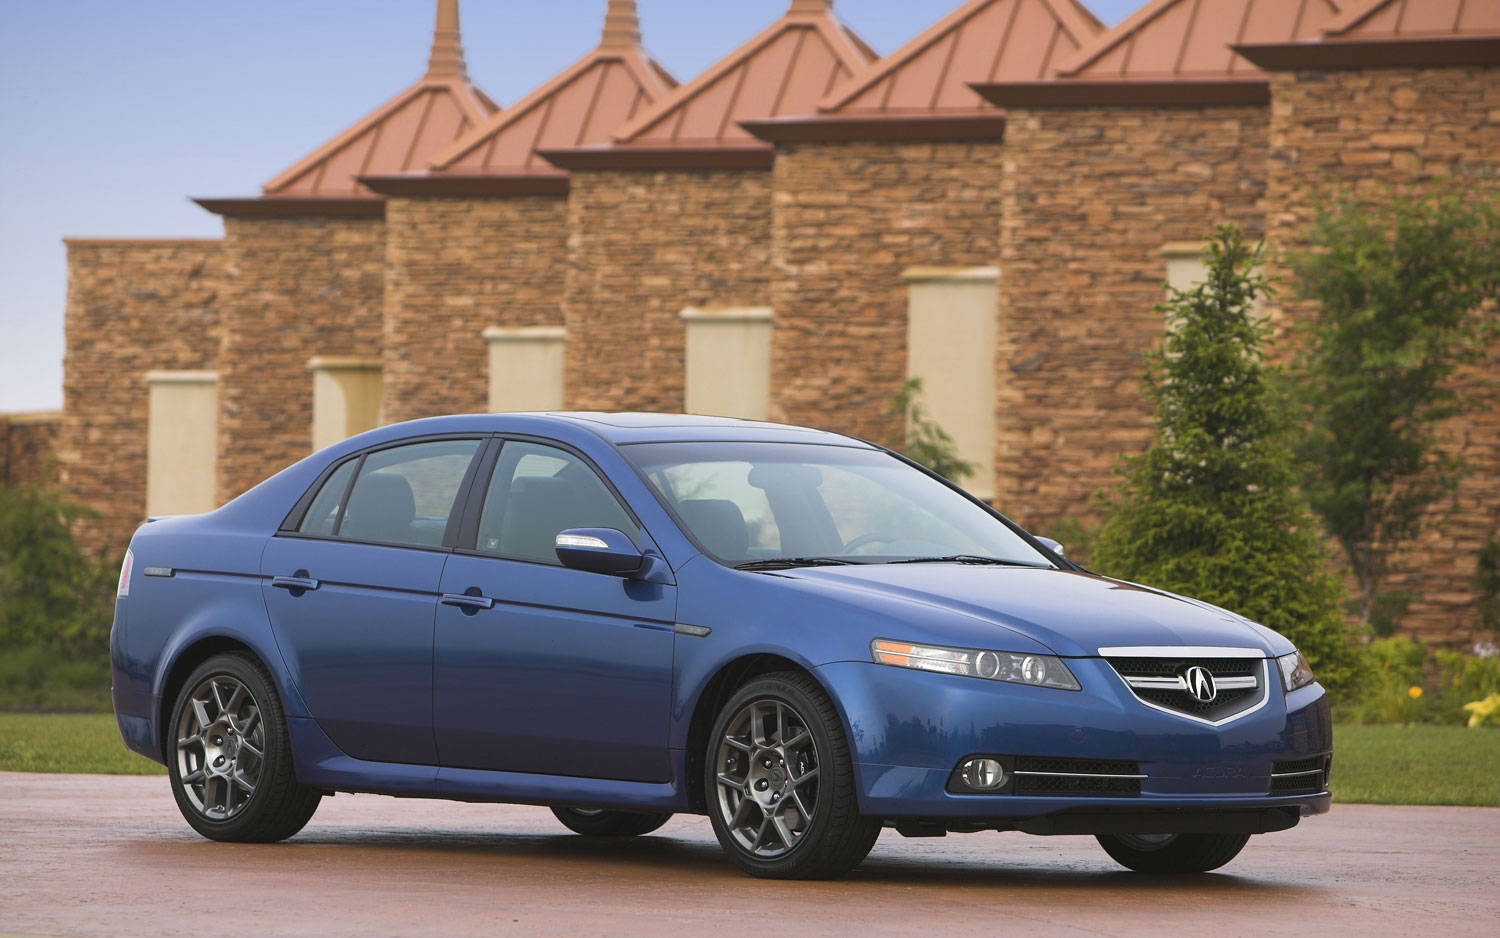 Recall Roundup: 2007-2008 Acura TL Power Steering Hose